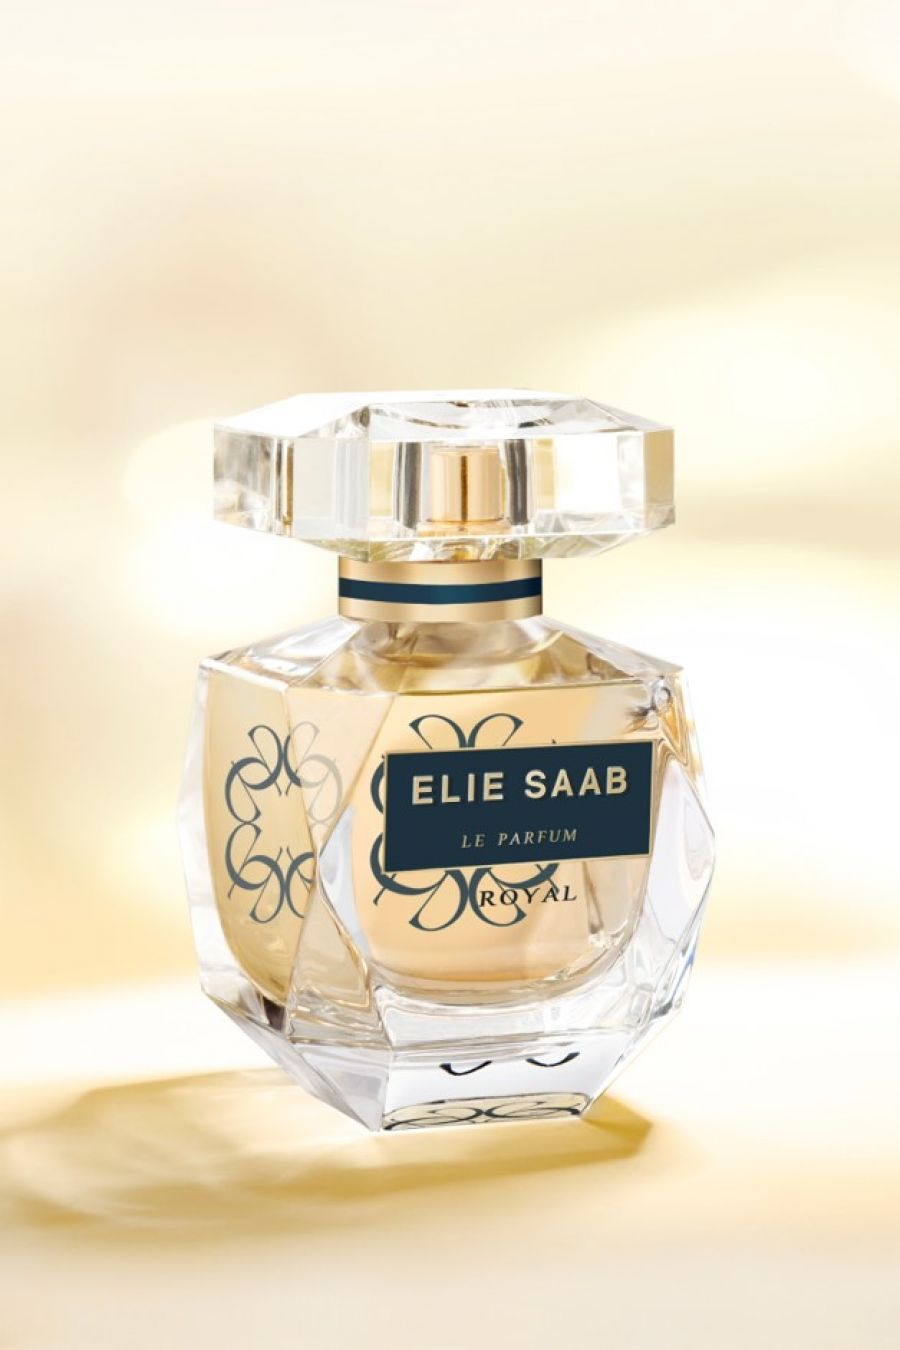 le parfum royal elie saab perfume a new fragrance for. Black Bedroom Furniture Sets. Home Design Ideas